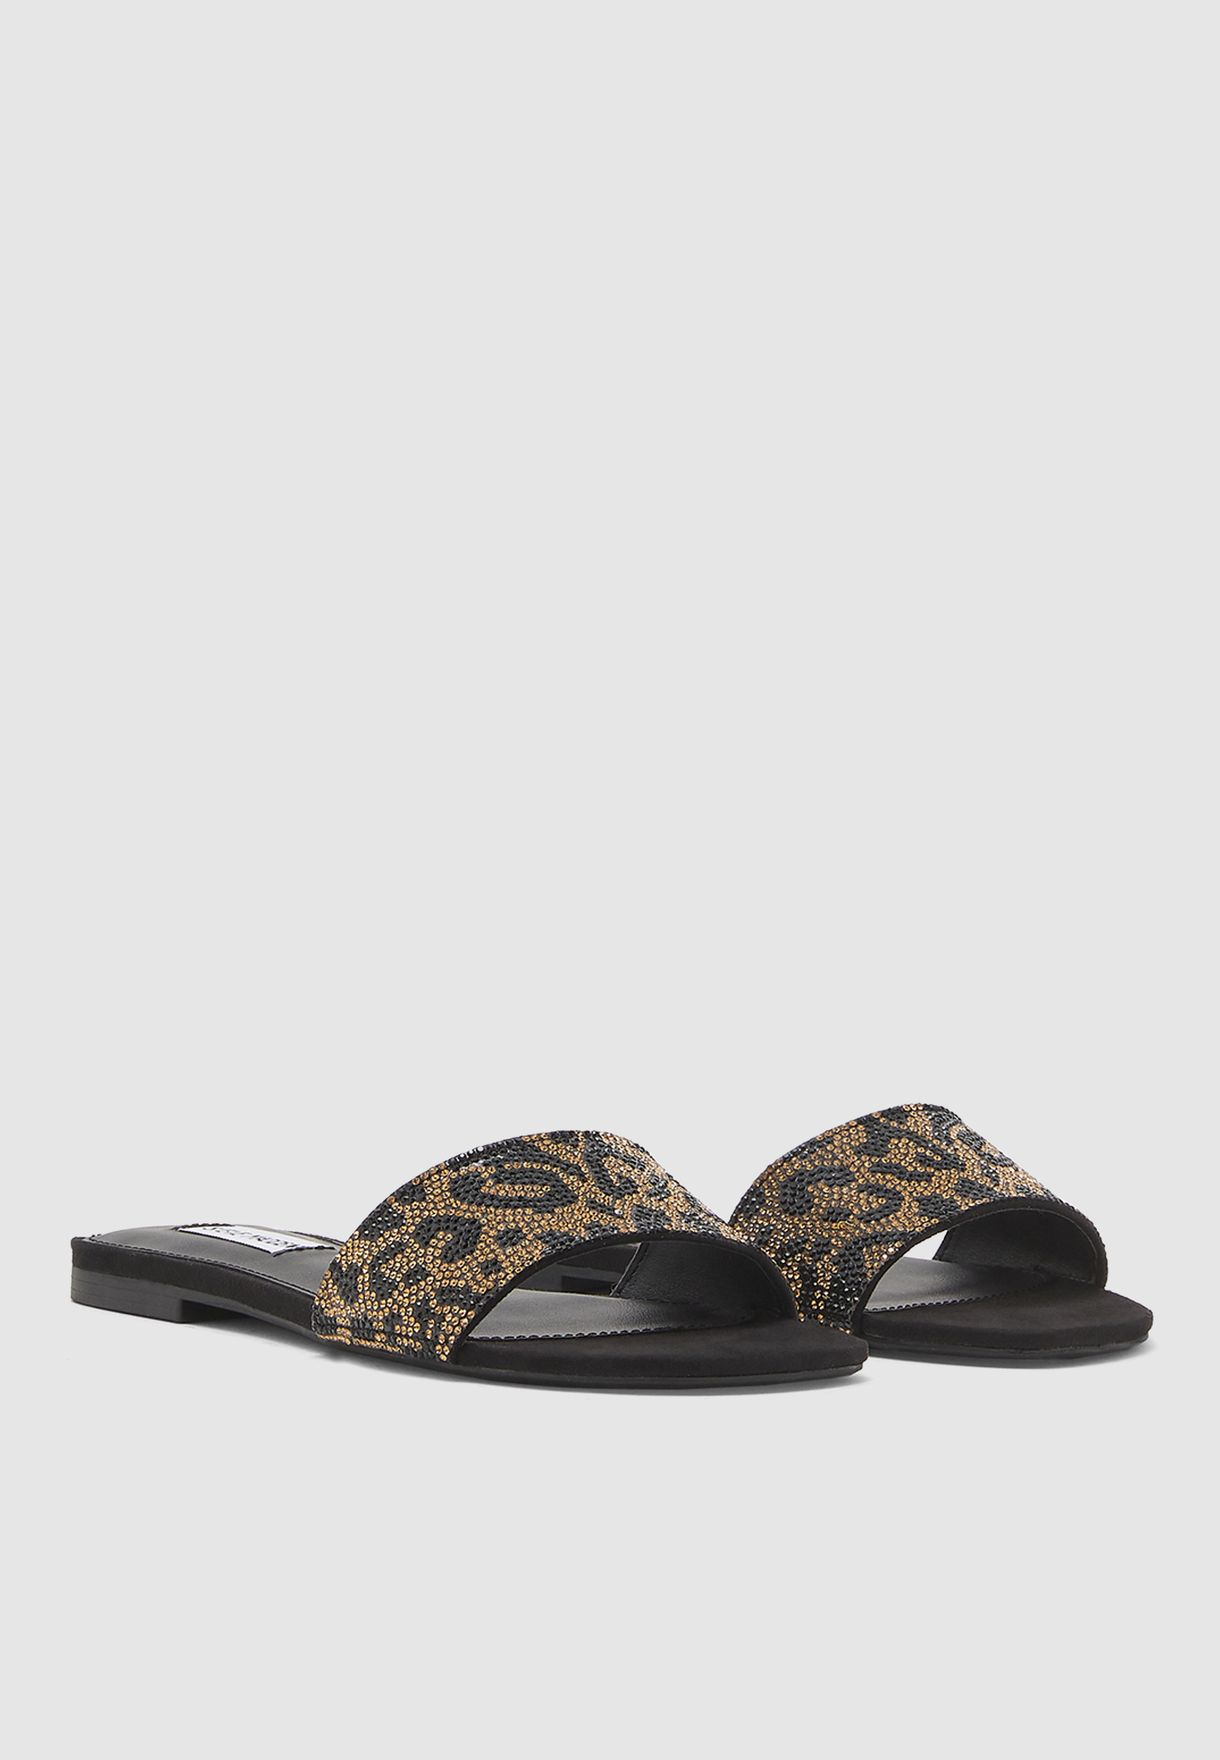 Bevy-R Single Strap Sandal - Leopard